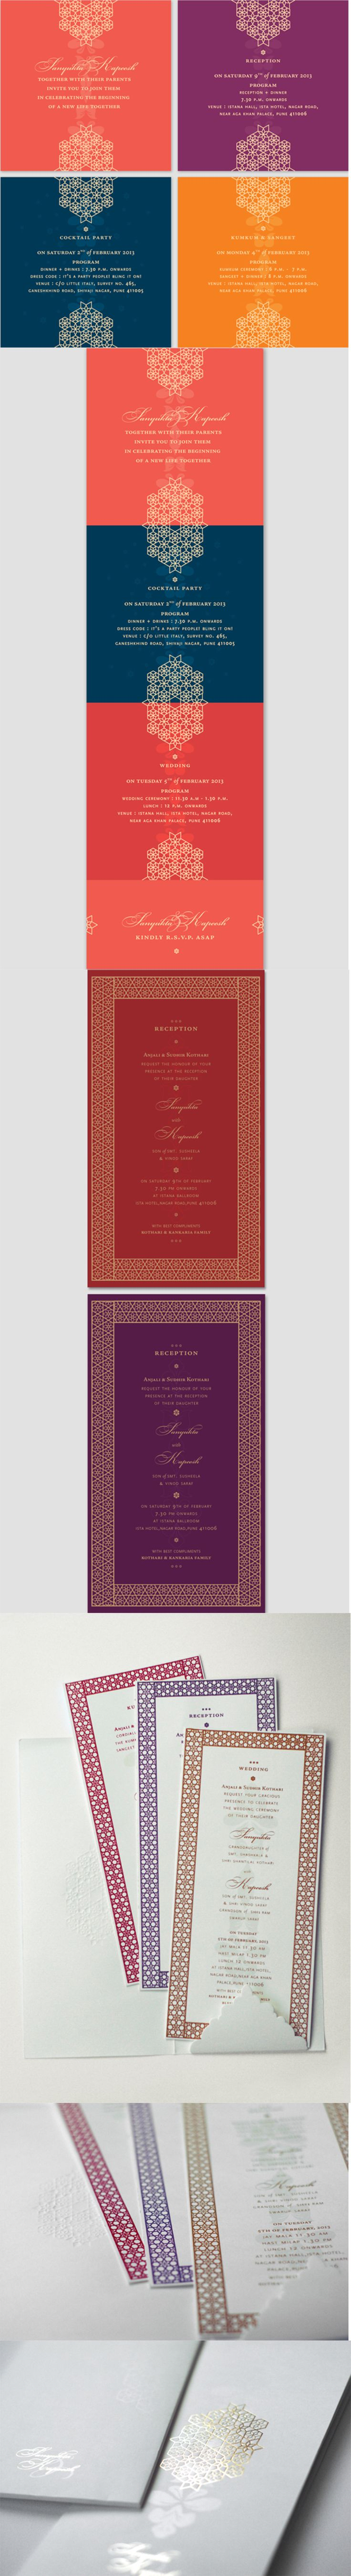 indian wedding cards indian wedding invitation s love the colours love the line pattern that connects even borders on Indian Wedding CardsIndian Wedding InvitationsWedding